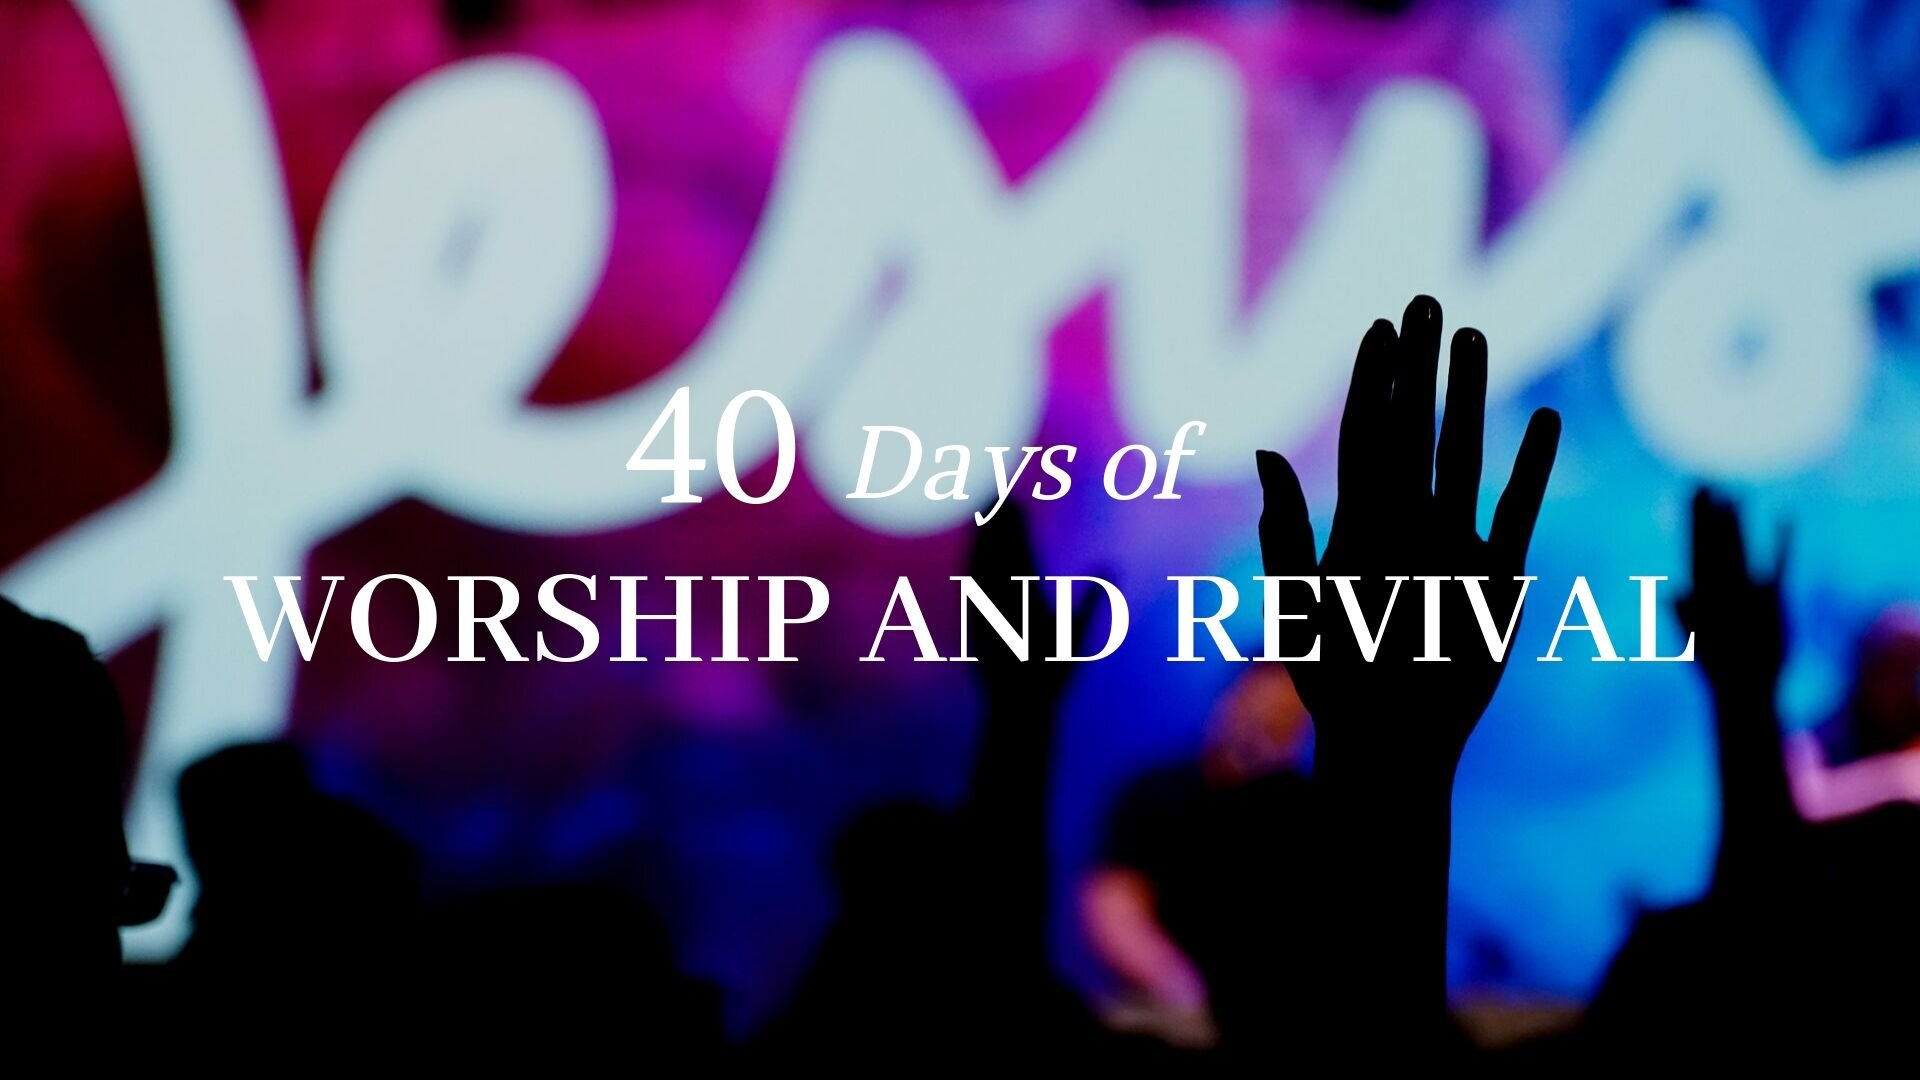 40 days of worship and revival (1).jpg